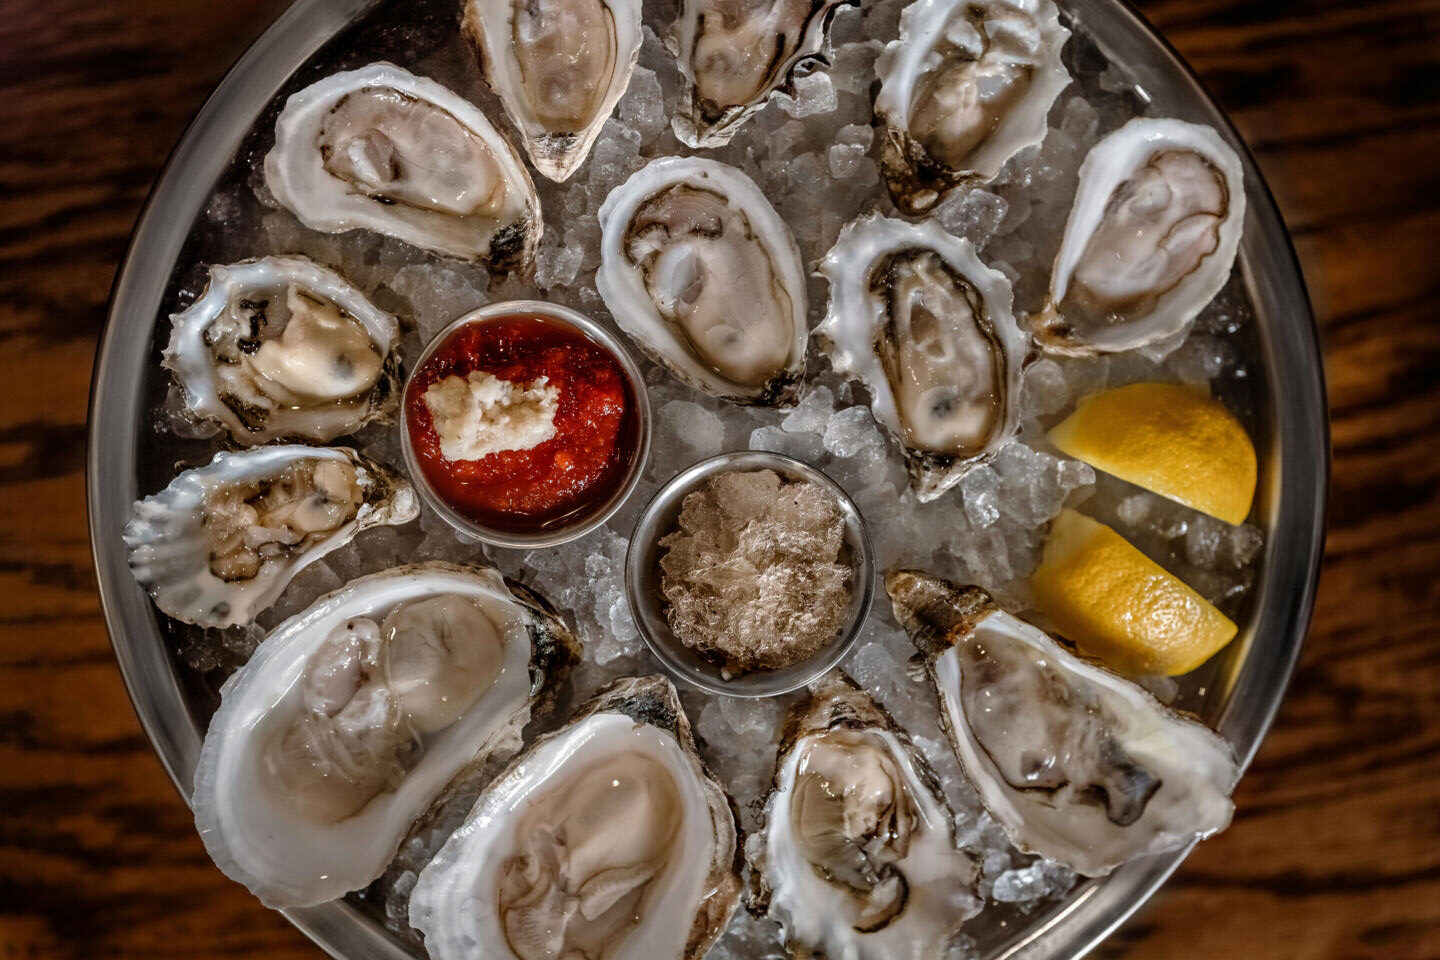 Shws oyster service